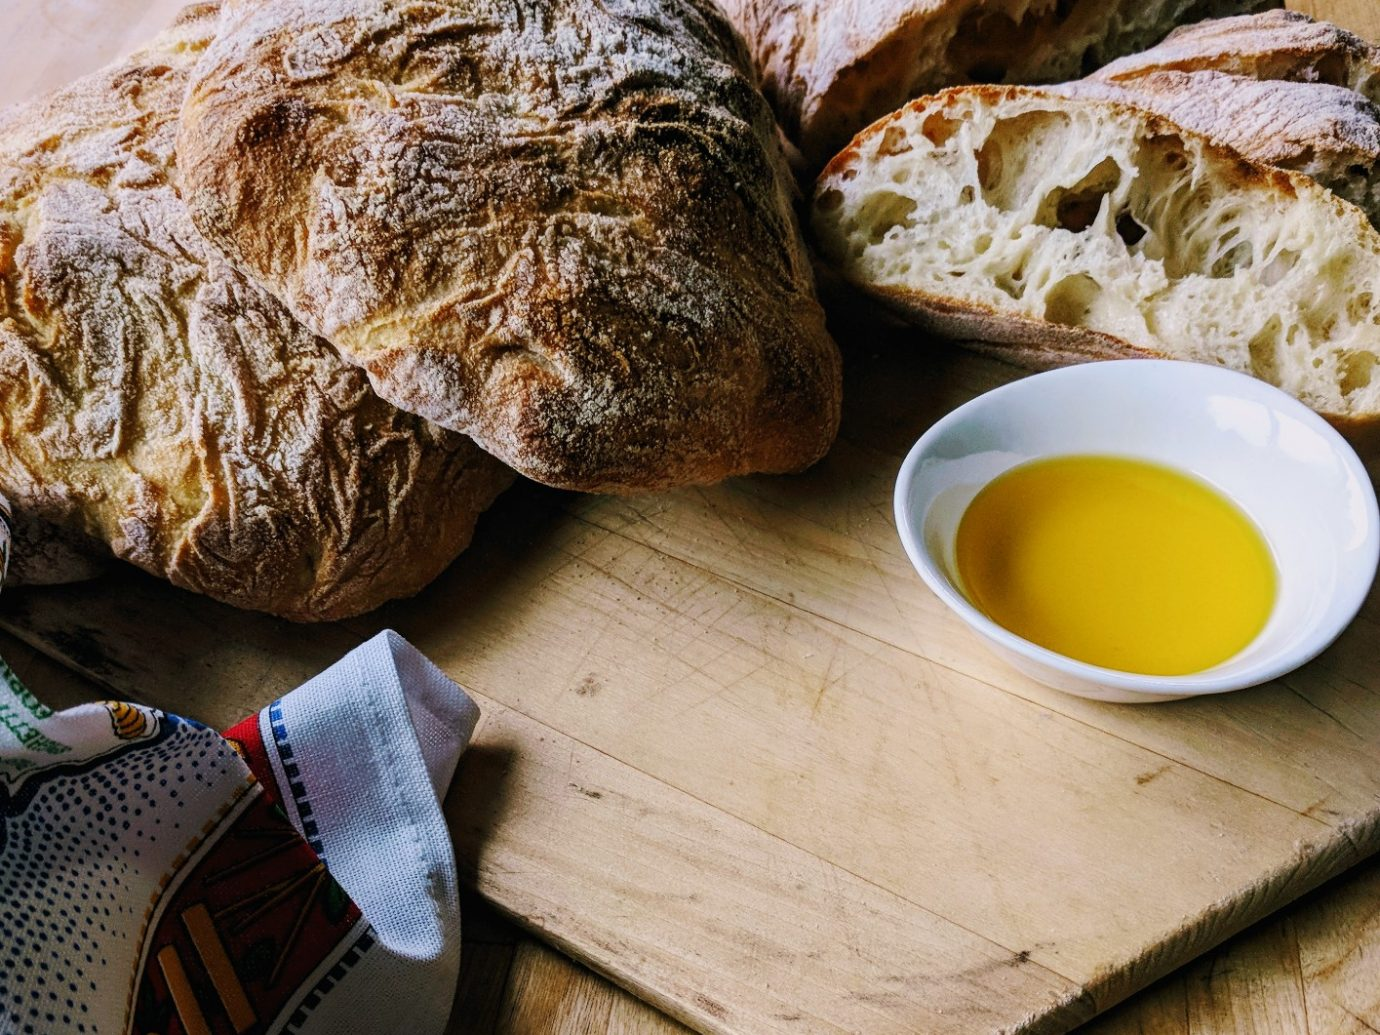 fresh baked bread on a wooden cutting board next to olive oil